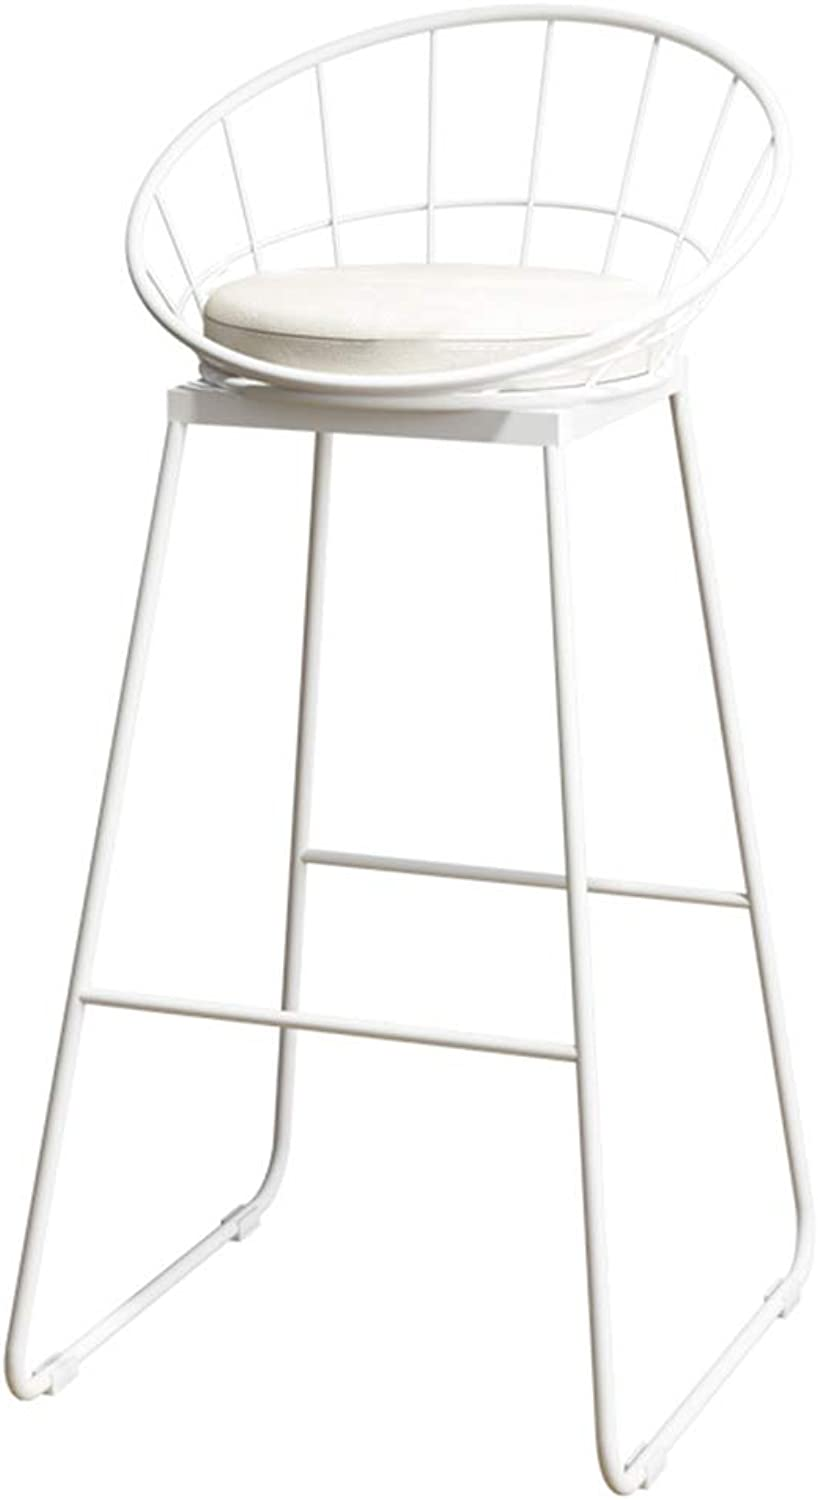 NLLPZ-STOOL Home Furniture Fashion Wrought Iron Bracket Bar Stool Kitchen Breakfast Stool Chair with Backrest White Bracket Legs White Sponge Pad Design (Sitting Height  65 75CM) (Size   75CM)